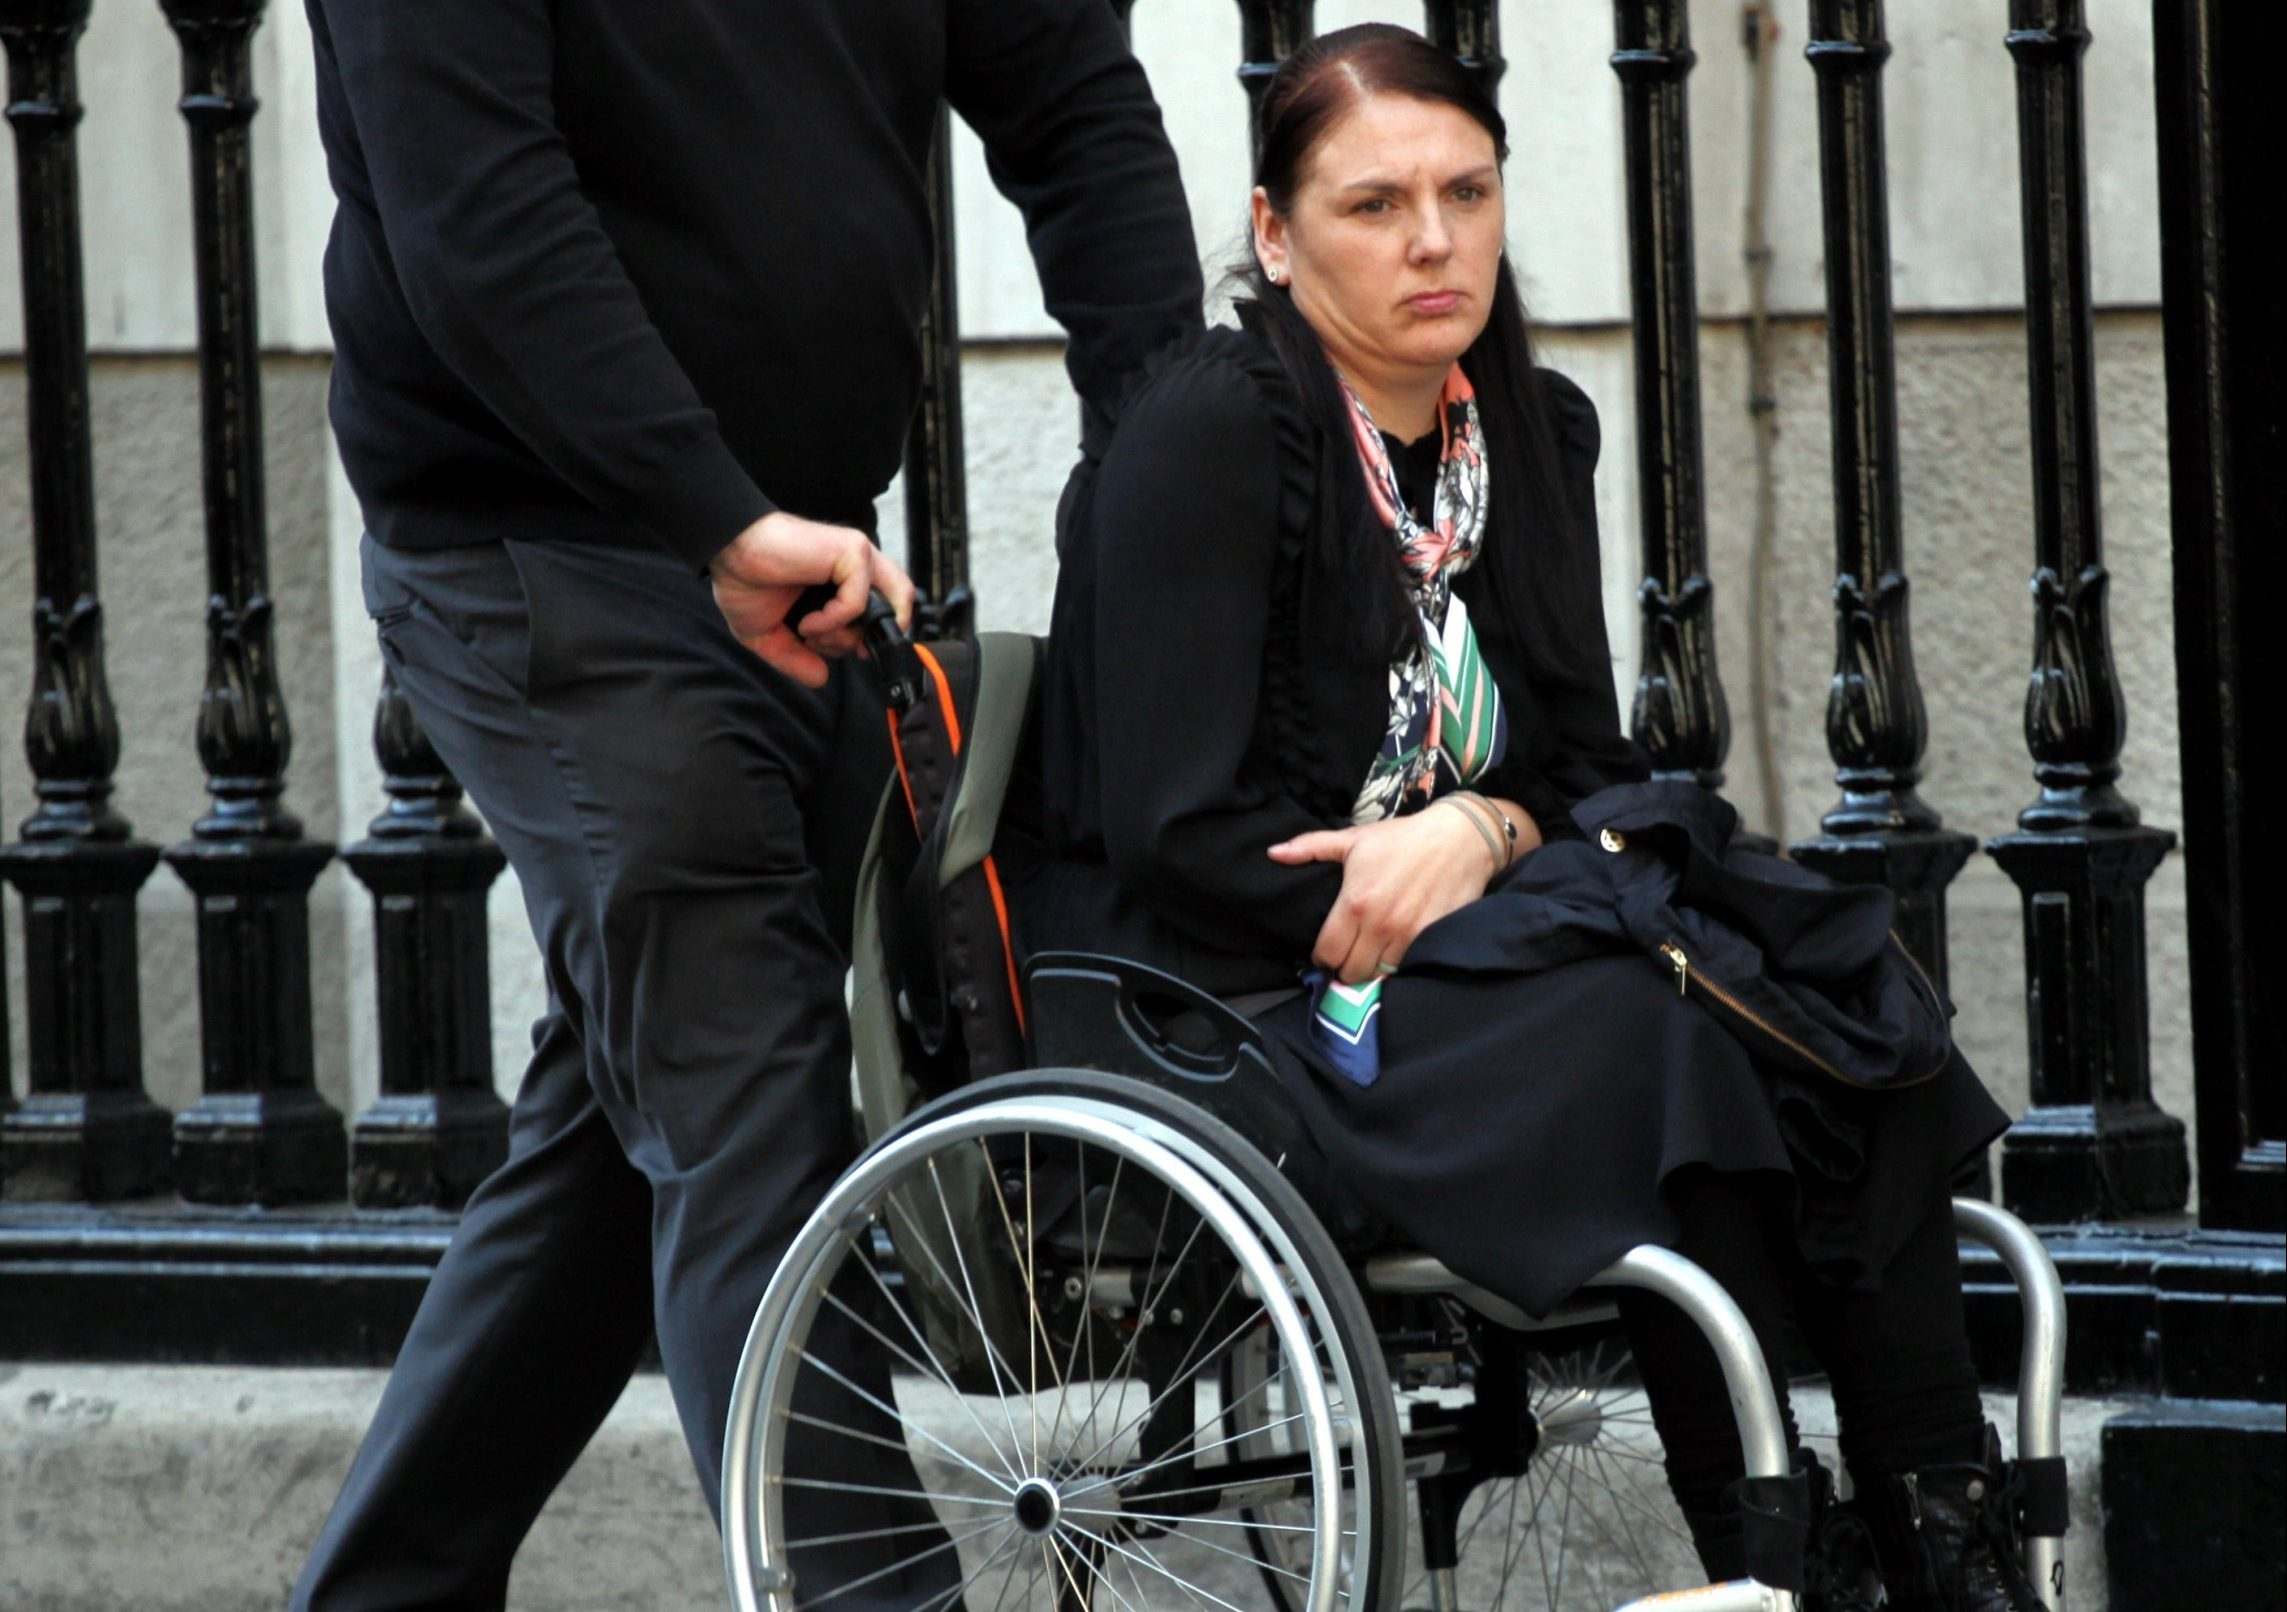 Kerry Shaw and husband Paul outside High Court during hearing in her fight for damages over back injury, March 1, 2019. Image by Champion News Service Ltd - 07914 583 378 - all first use to be considered live for payment purposes.